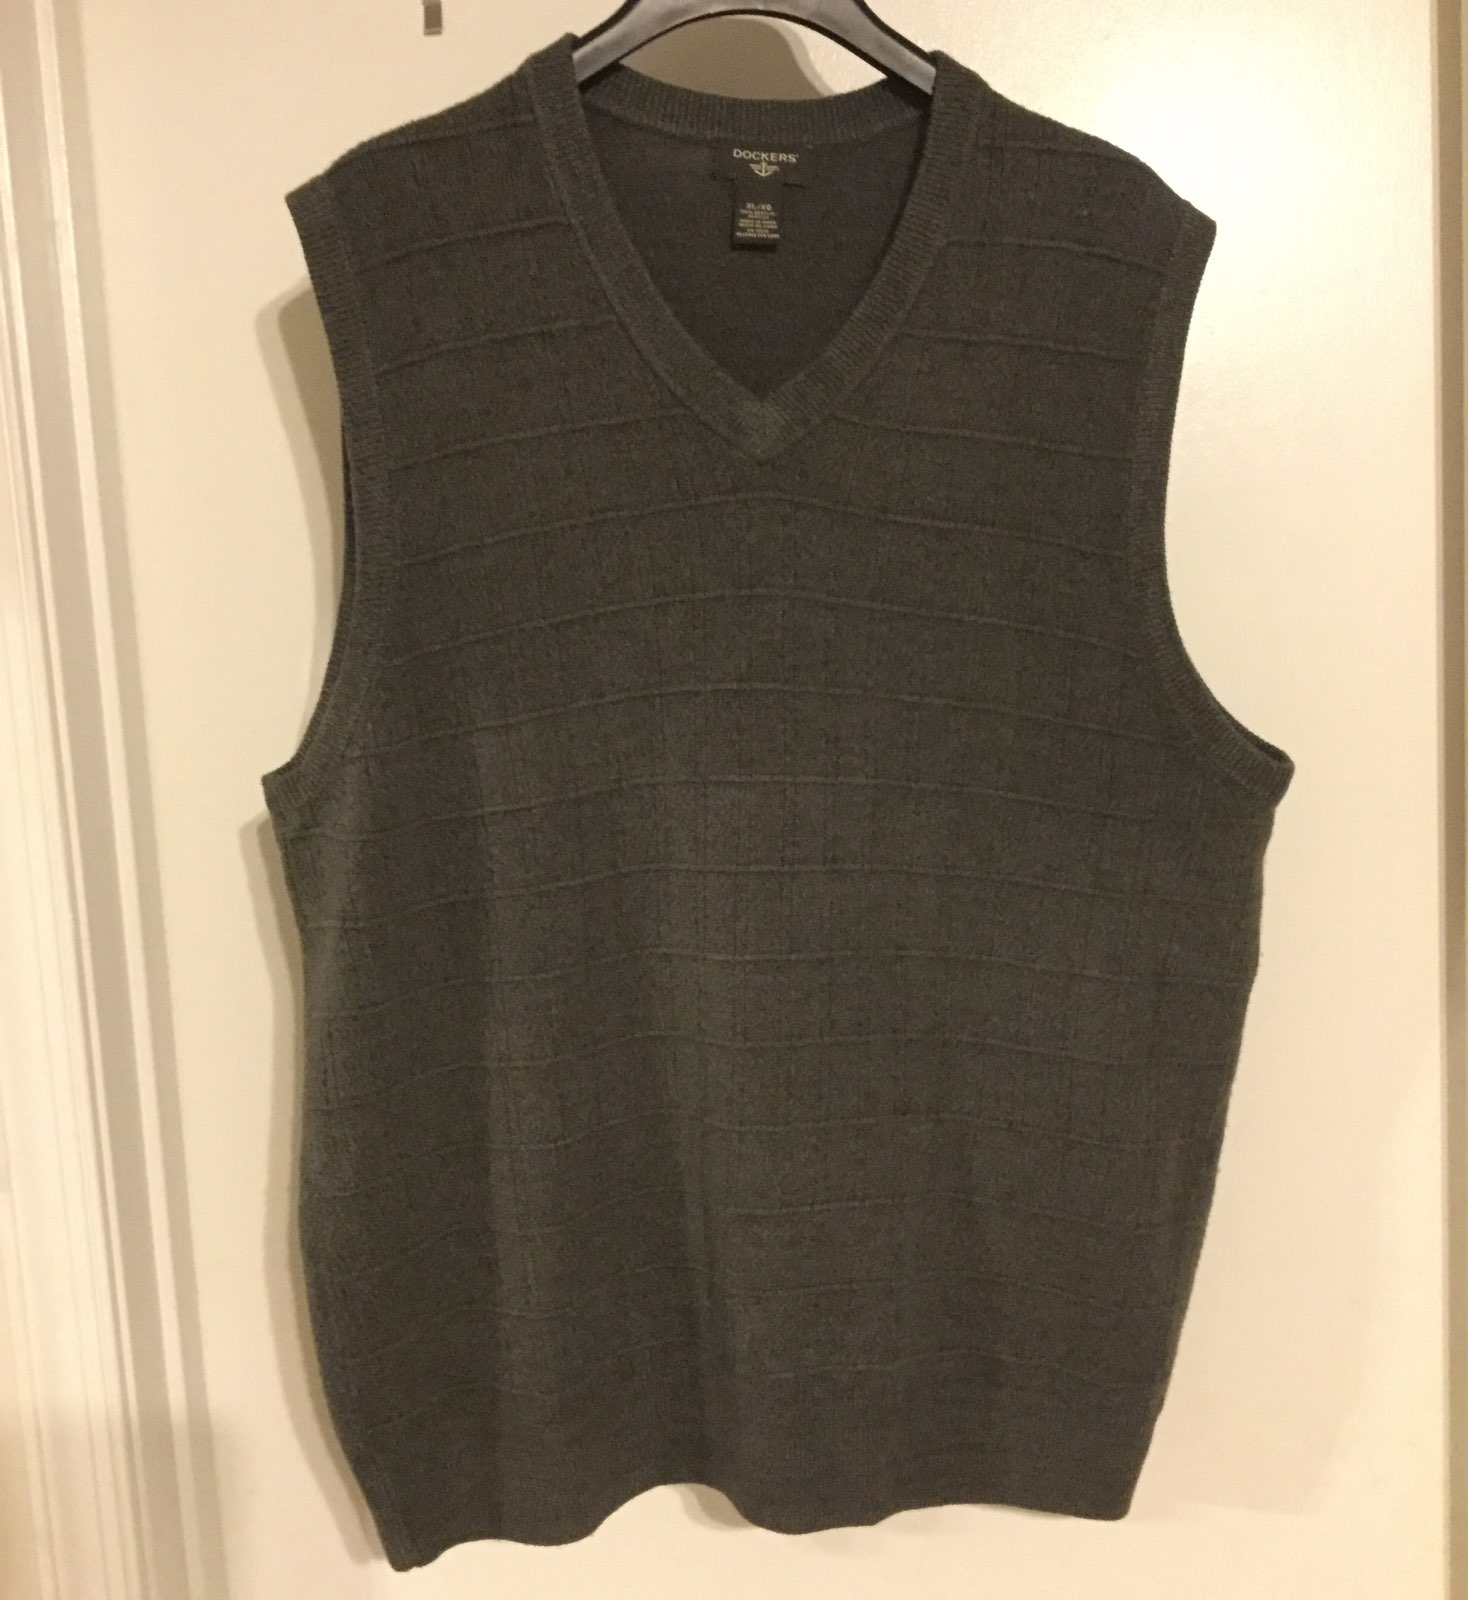 Men's Dockers Sweater Vest Size XL Gray - Mercari: BUY & SELL ...